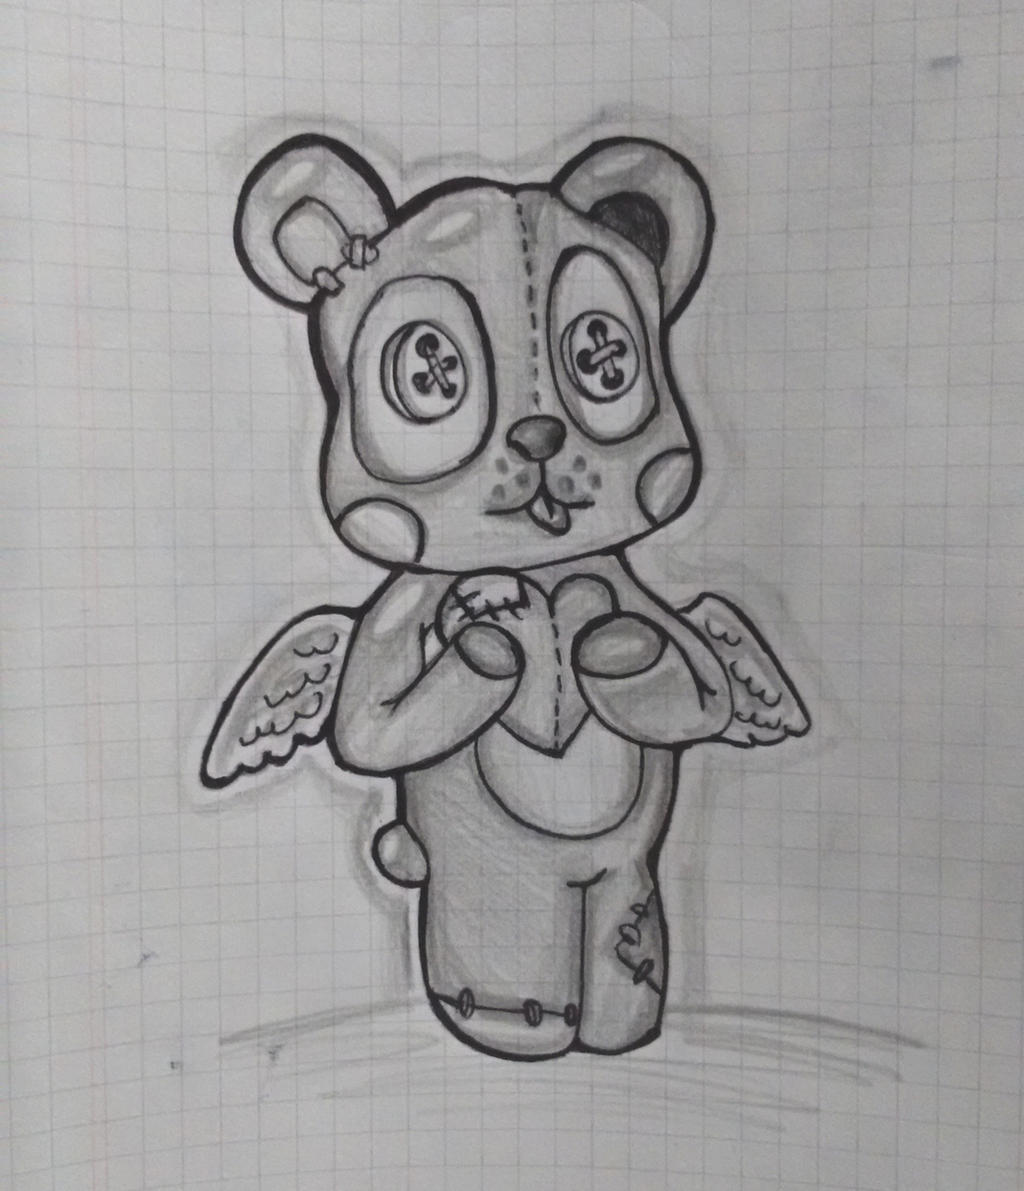 New Line Art Design : Teddy bear new school tattoo design by blacknekobit on